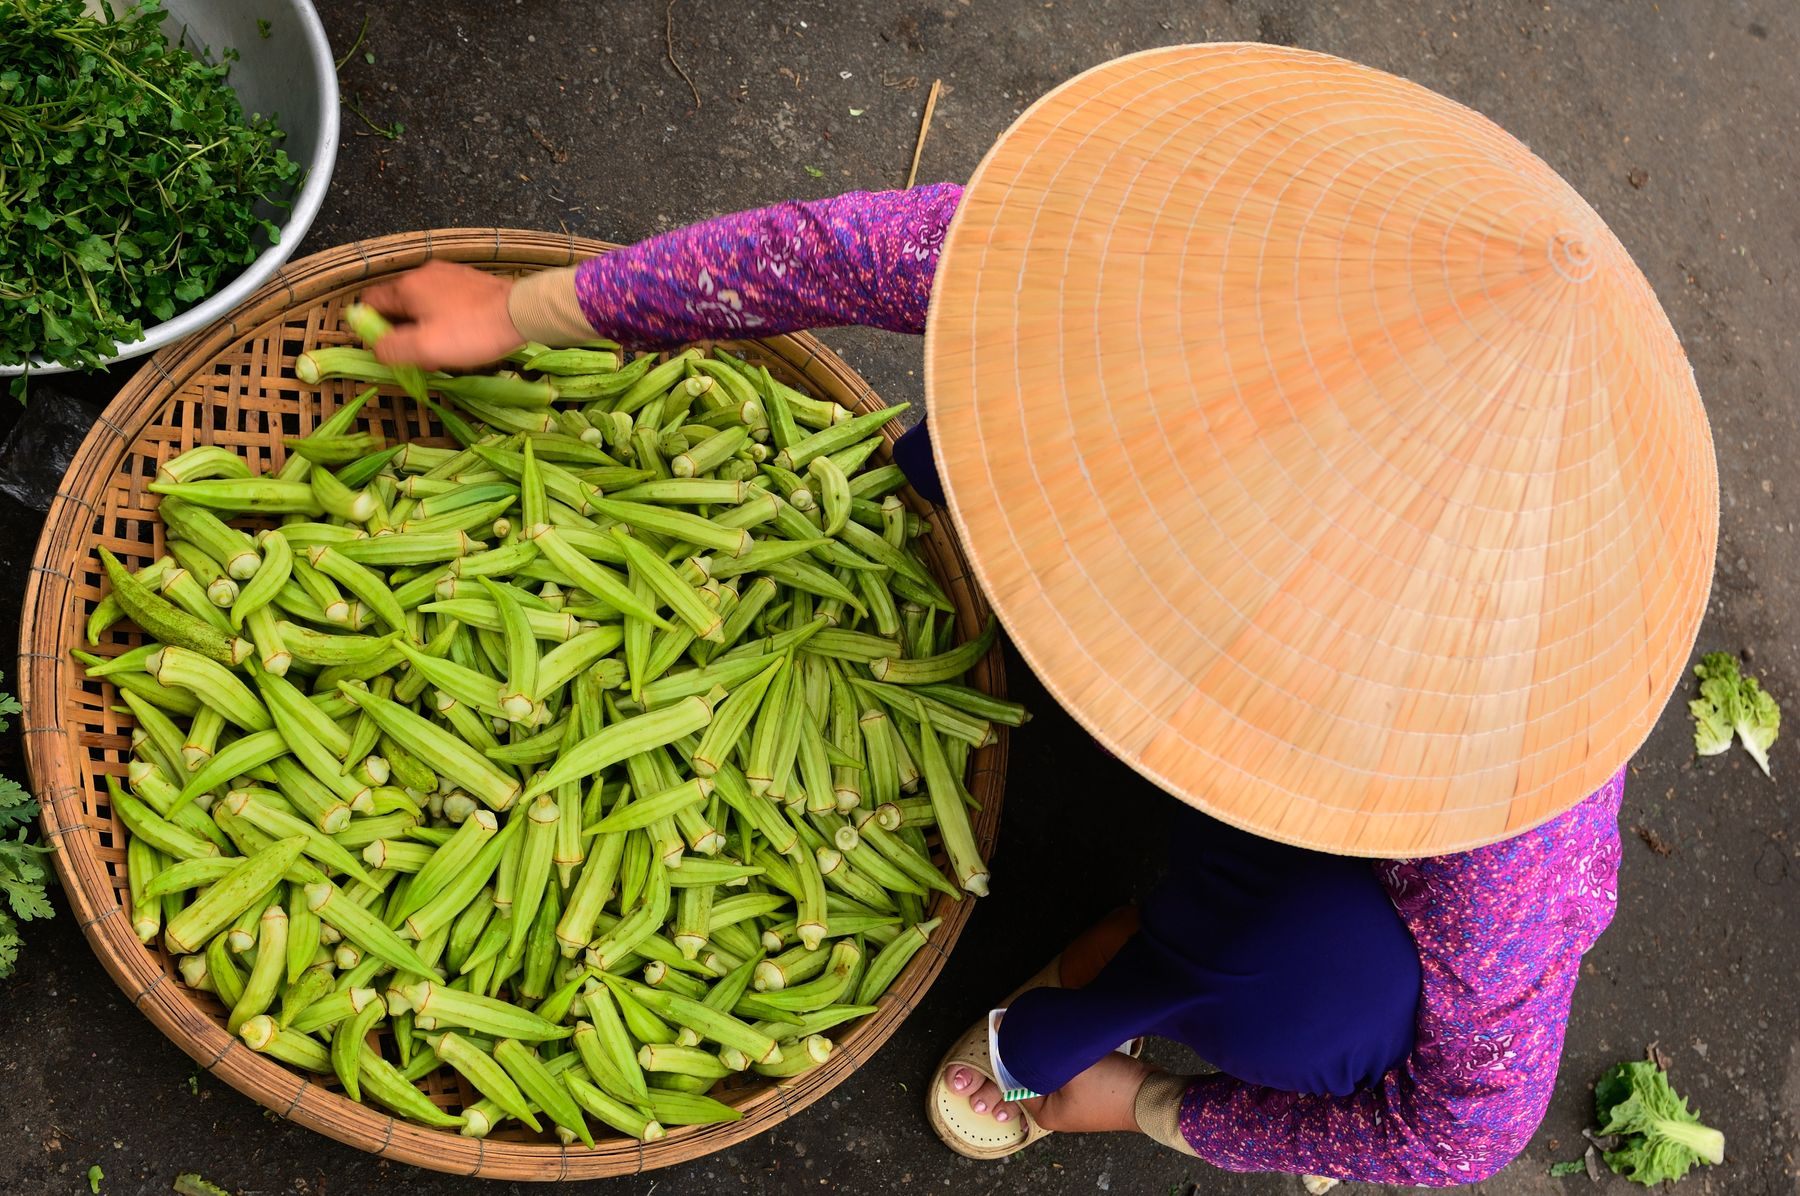 Vietnamese woman with bamboo hat selling veggies at a street market